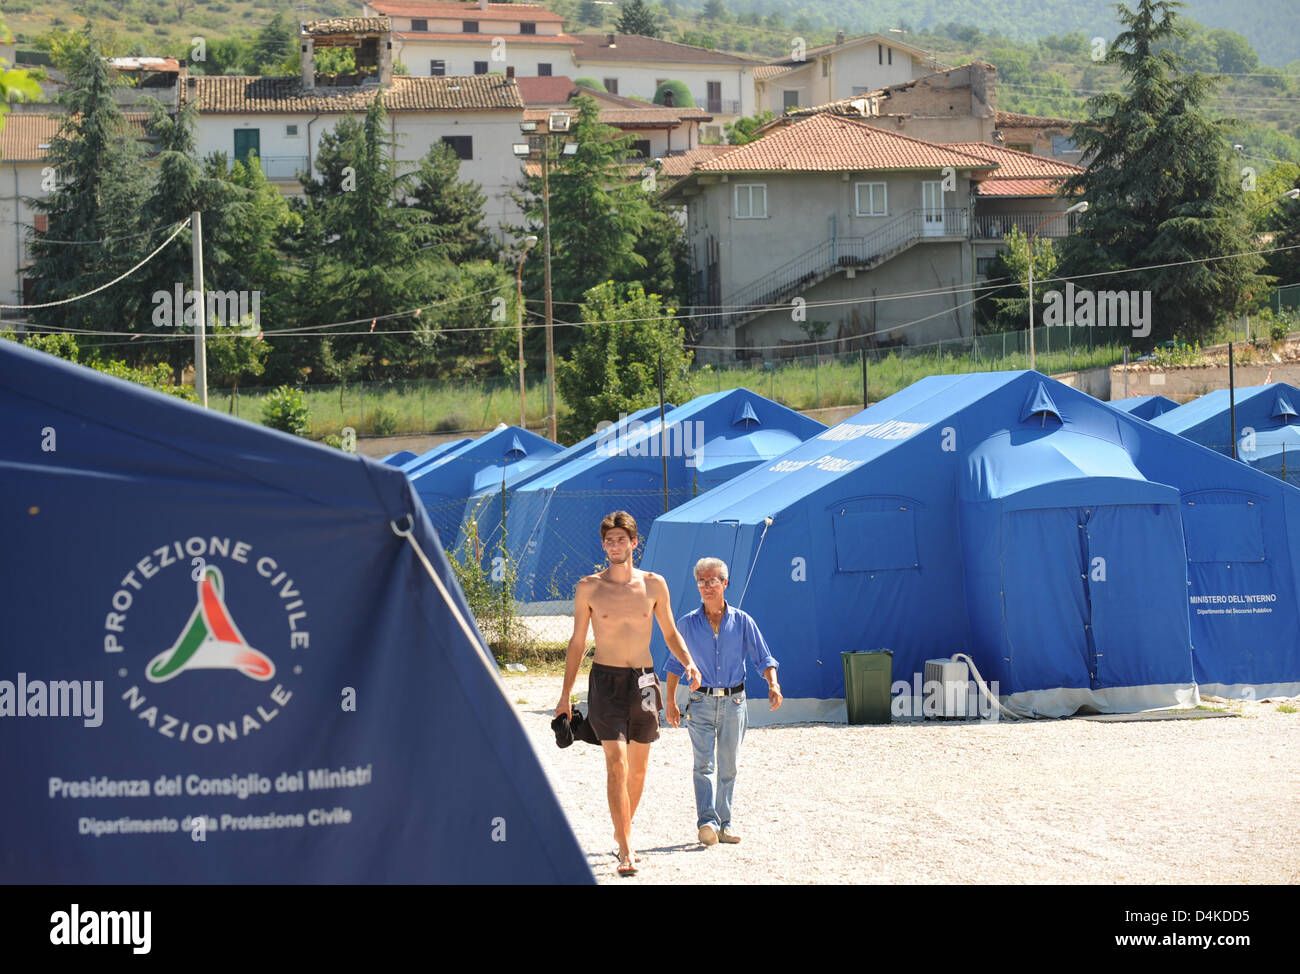 Displaced citizens walk past tents at a refugee c& run by the Red Cross in San Gregorio near L?Aquila Italy 07 July 2009. In April 2009 an earthquake ... & Displaced citizens walk past tents at a refugee camp run by the ...